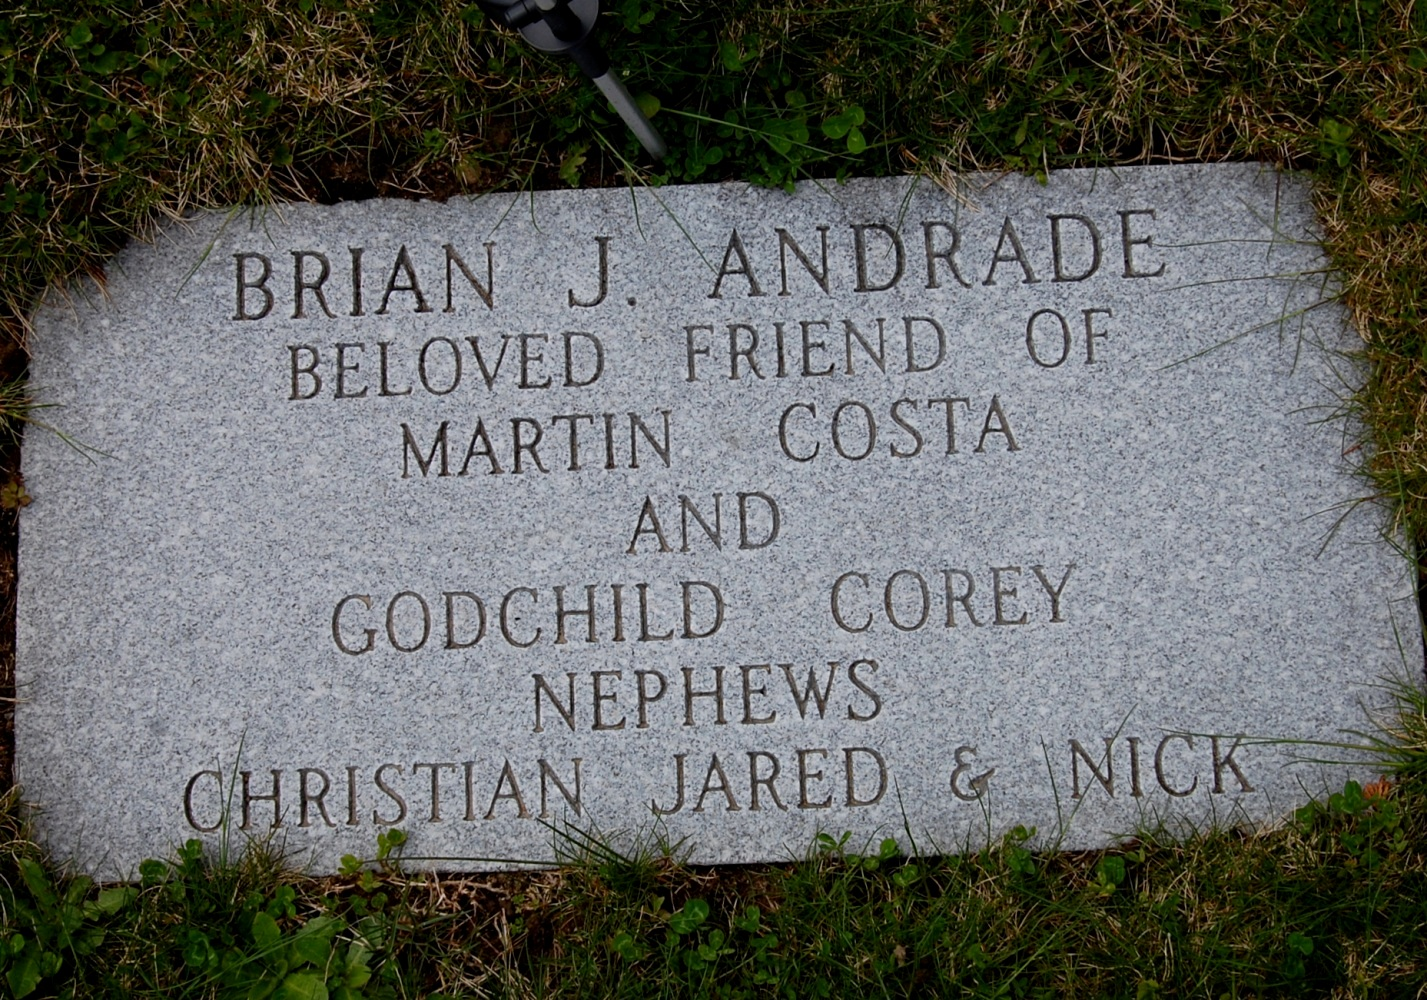 Interred Image: A6-267.jpg